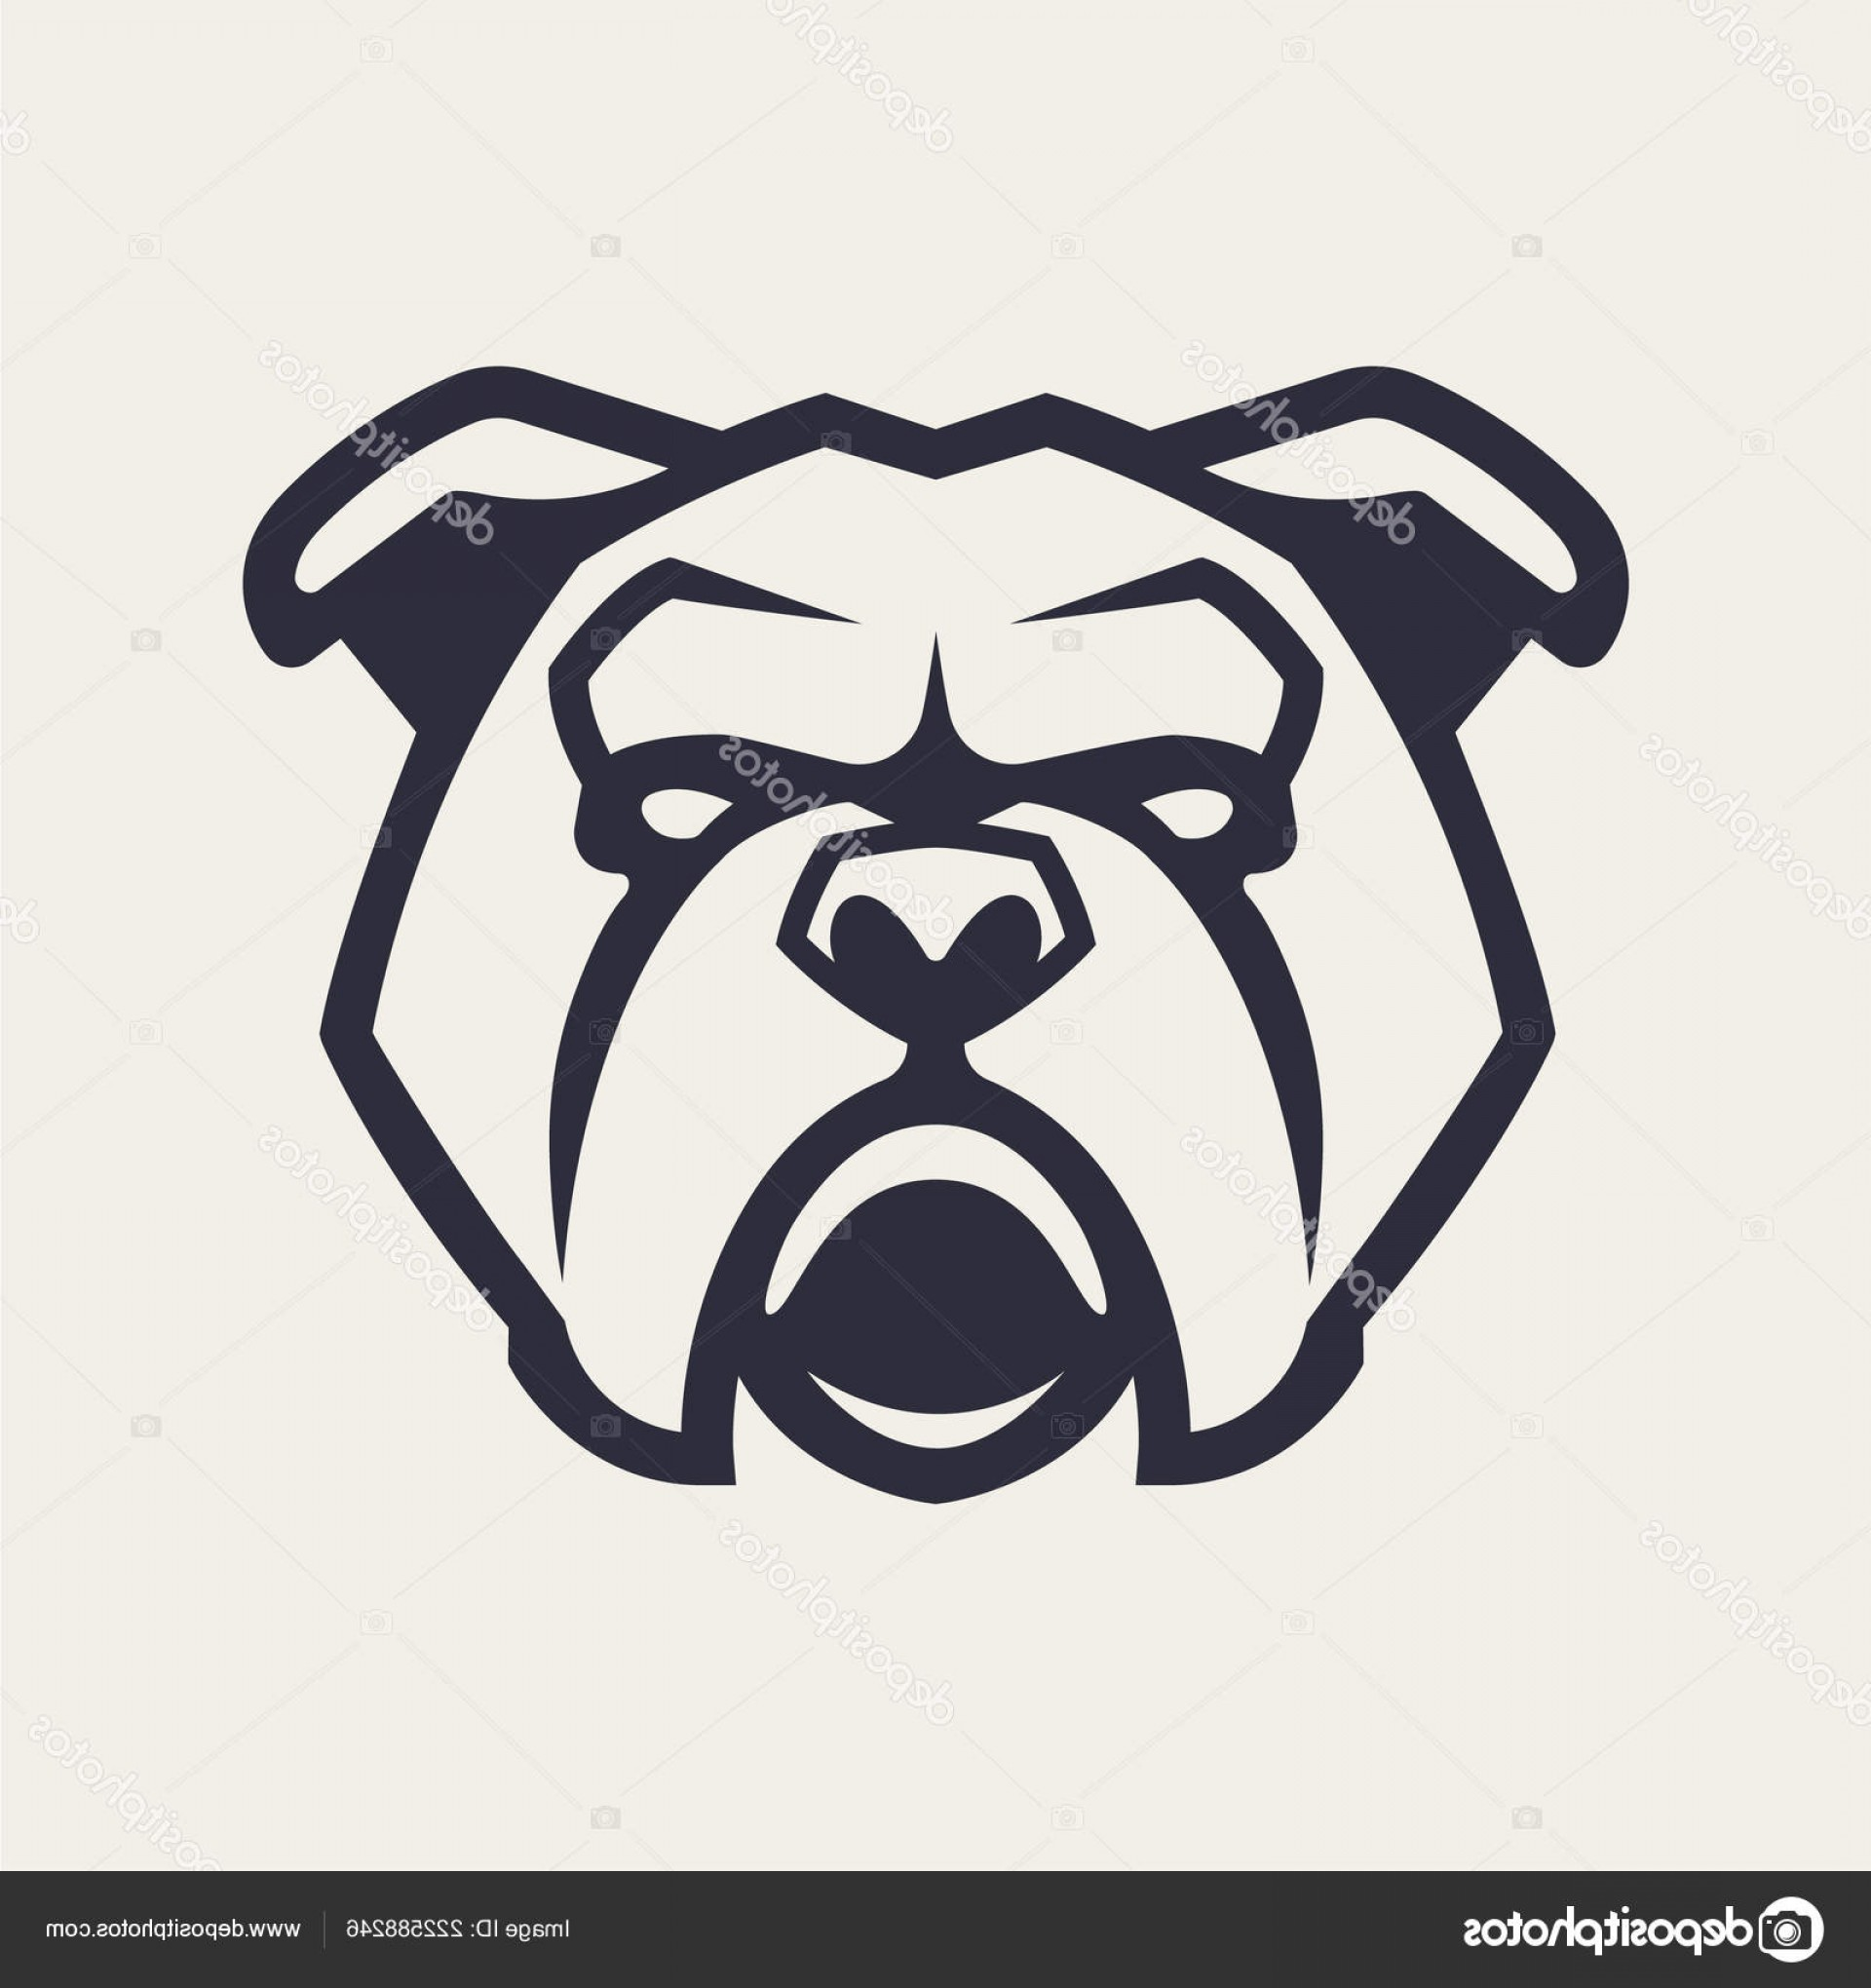 Bulldog Vector Art: Stock Illustration Bulldog Mascot Vector Art Frontal